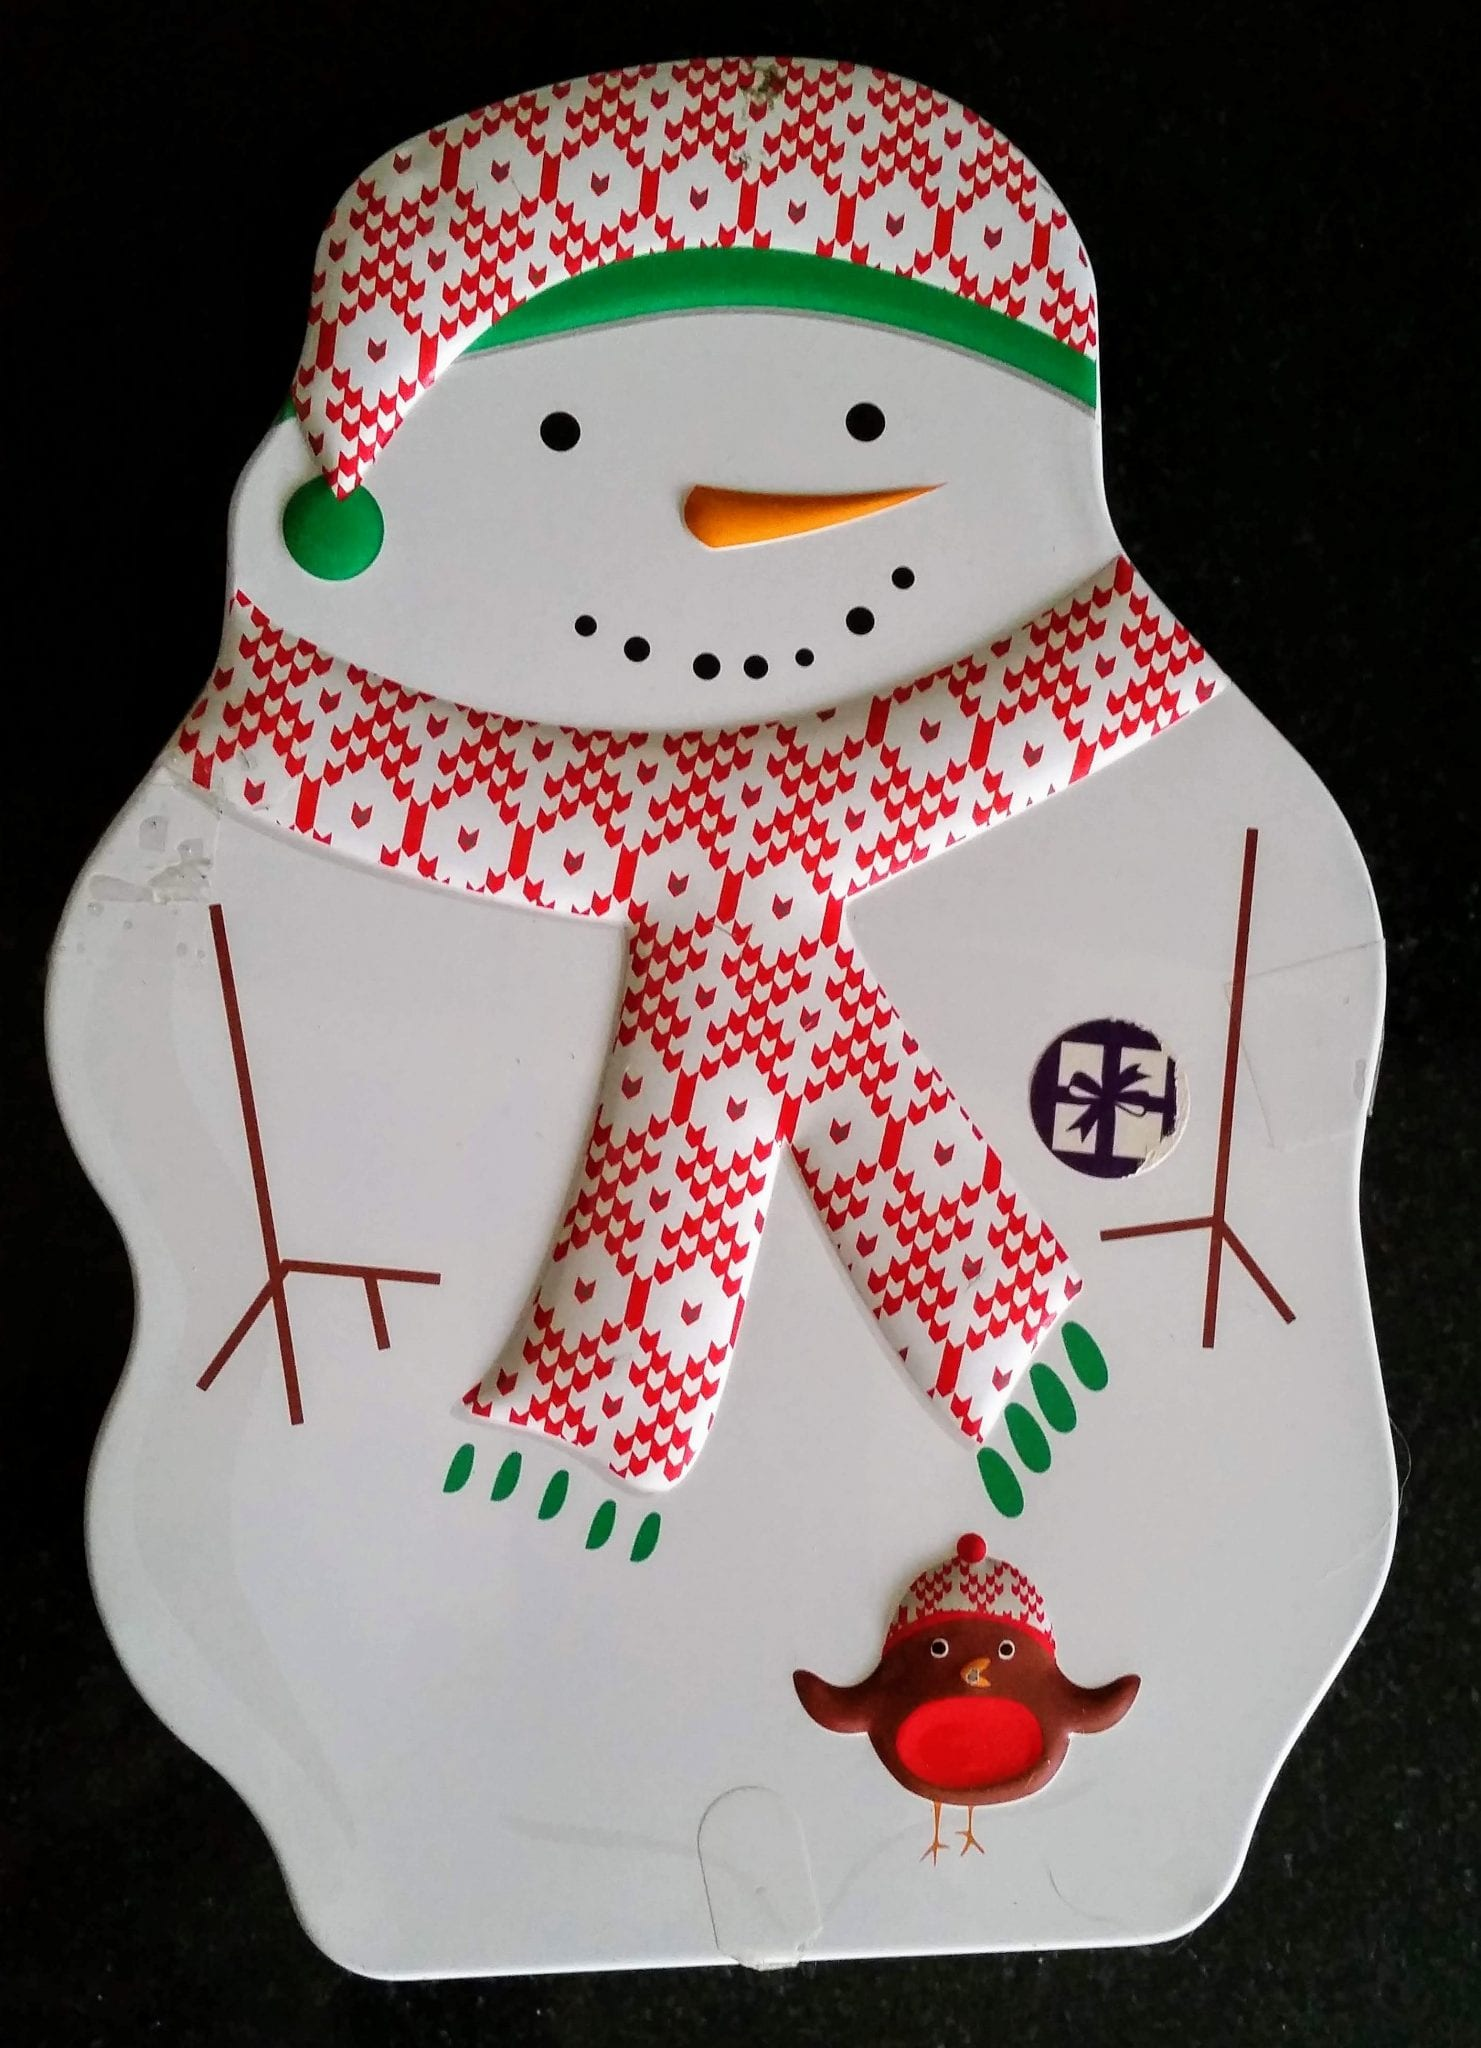 A snowman-shaped biscuit tin